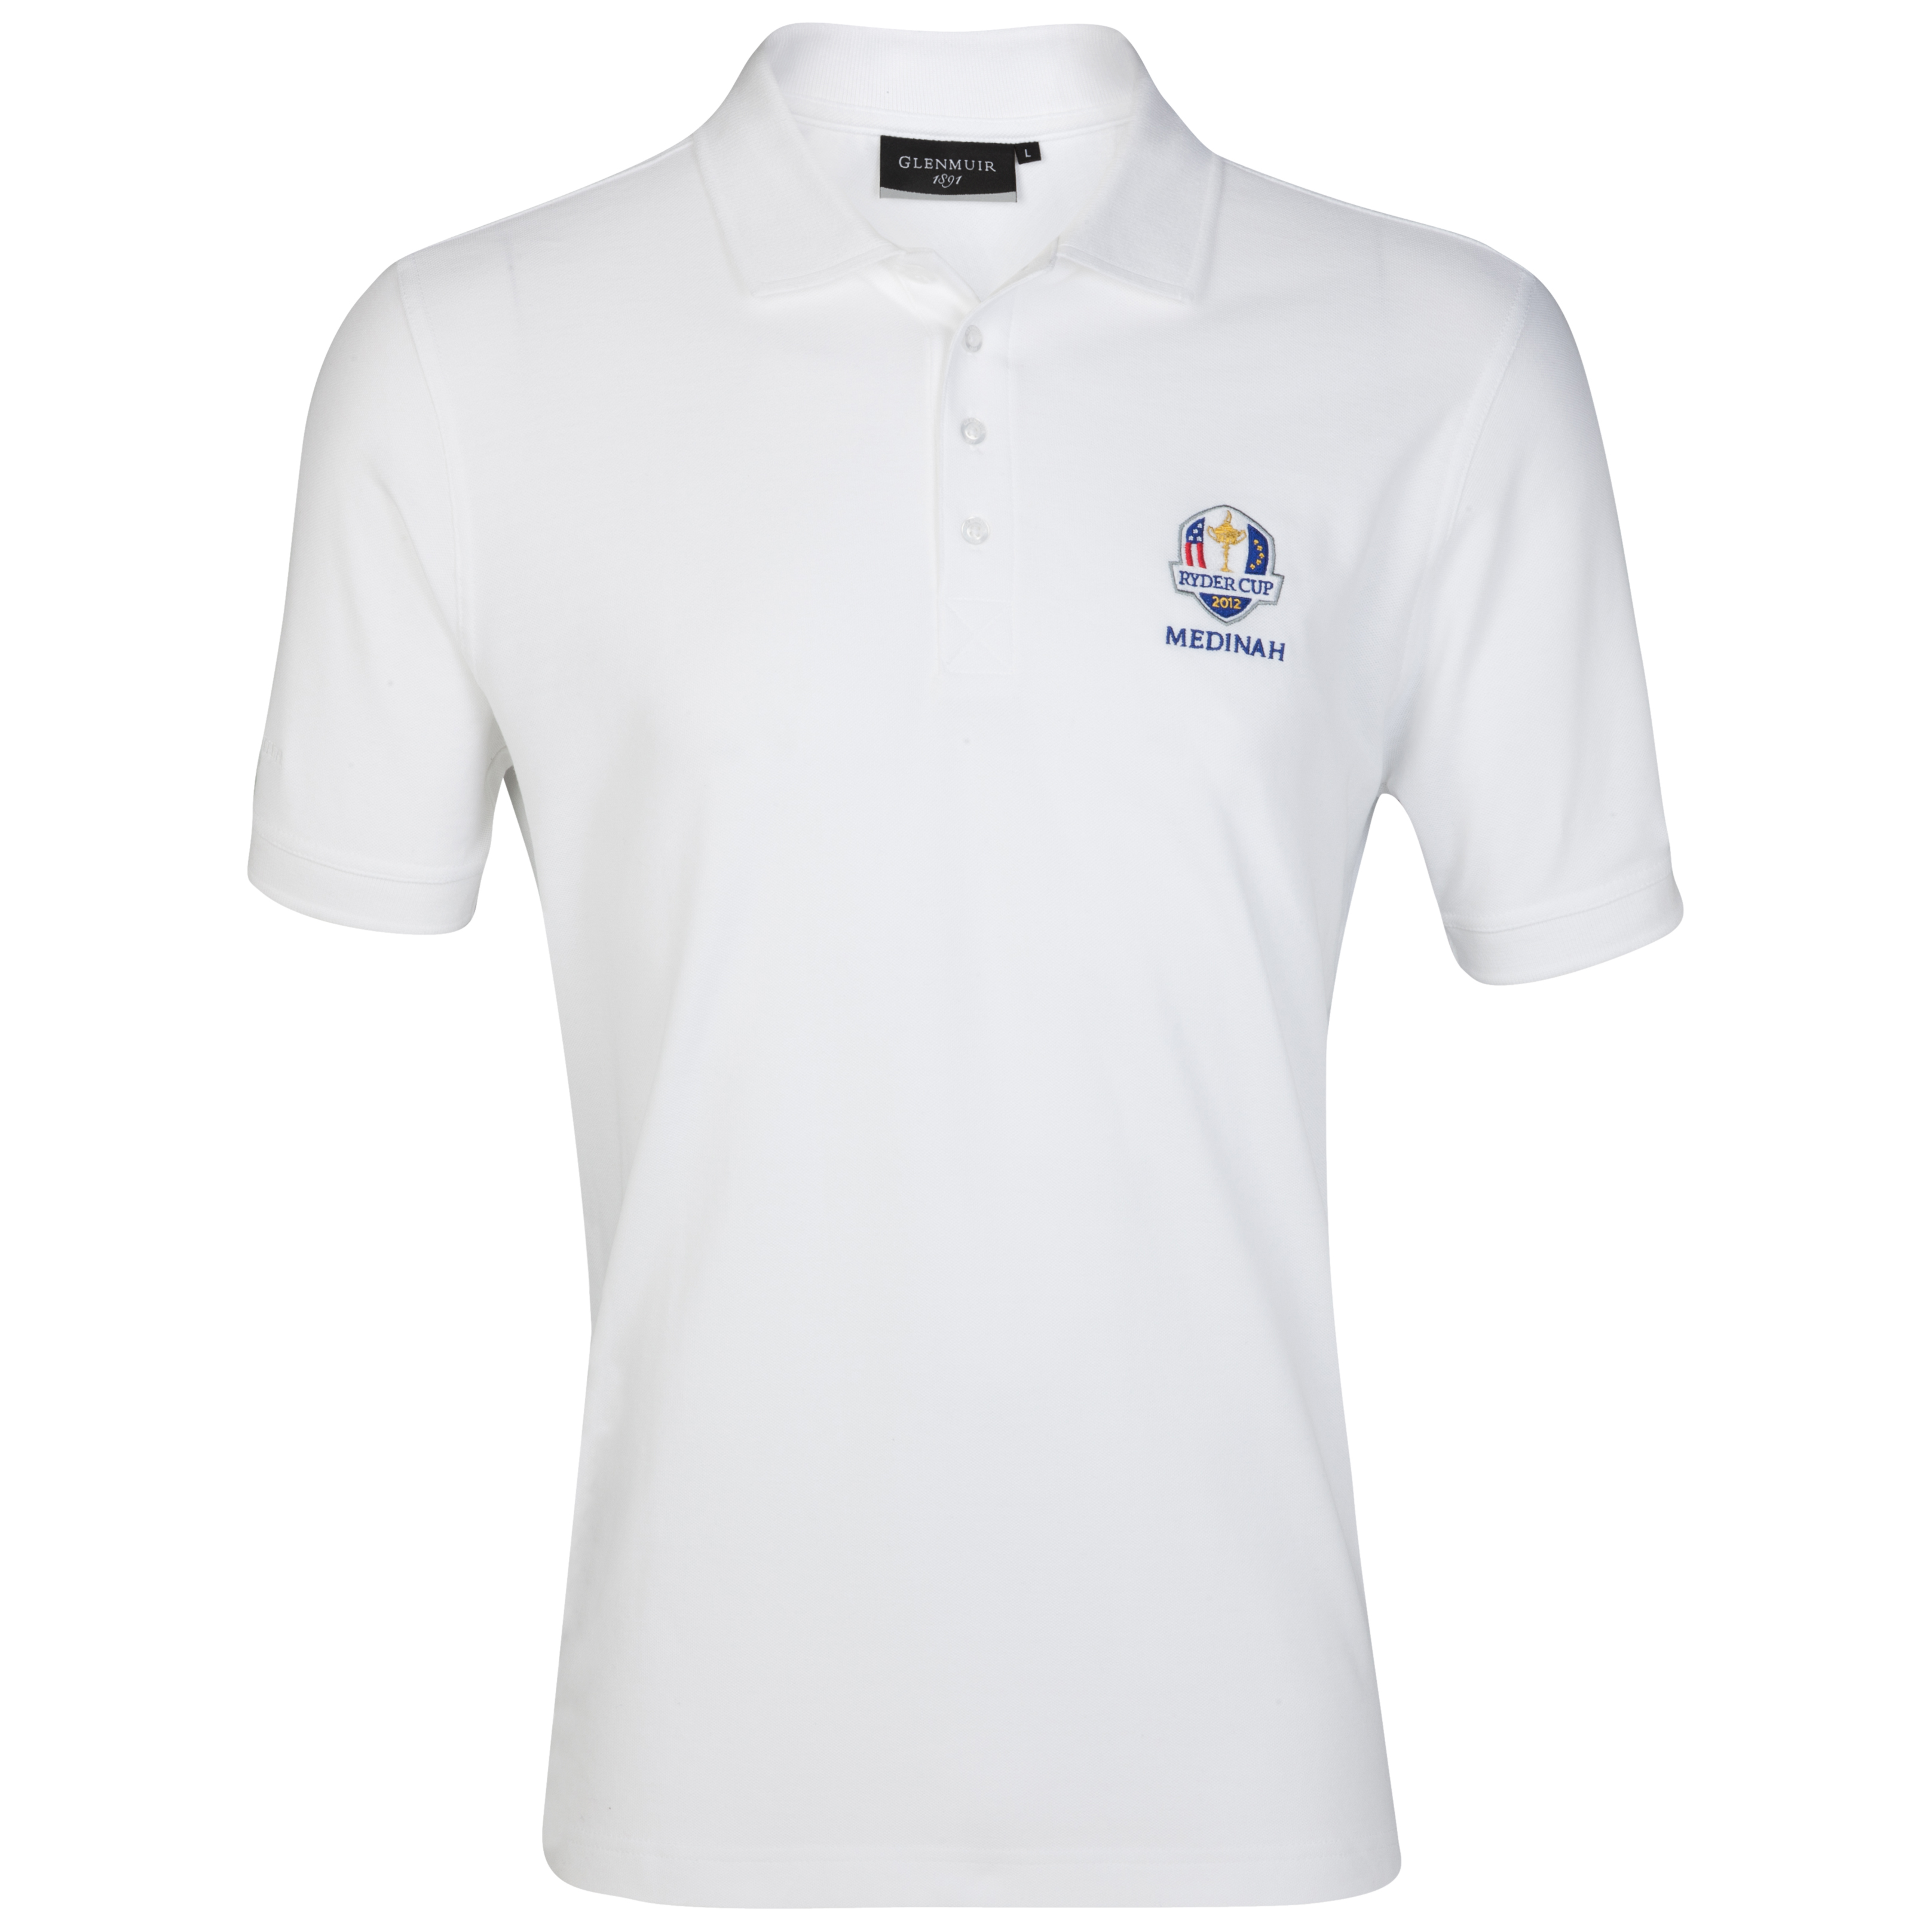 The Ryder Cup Medinah 2012 Glenmuir Ralia Commemorative Winners Polo Shirt